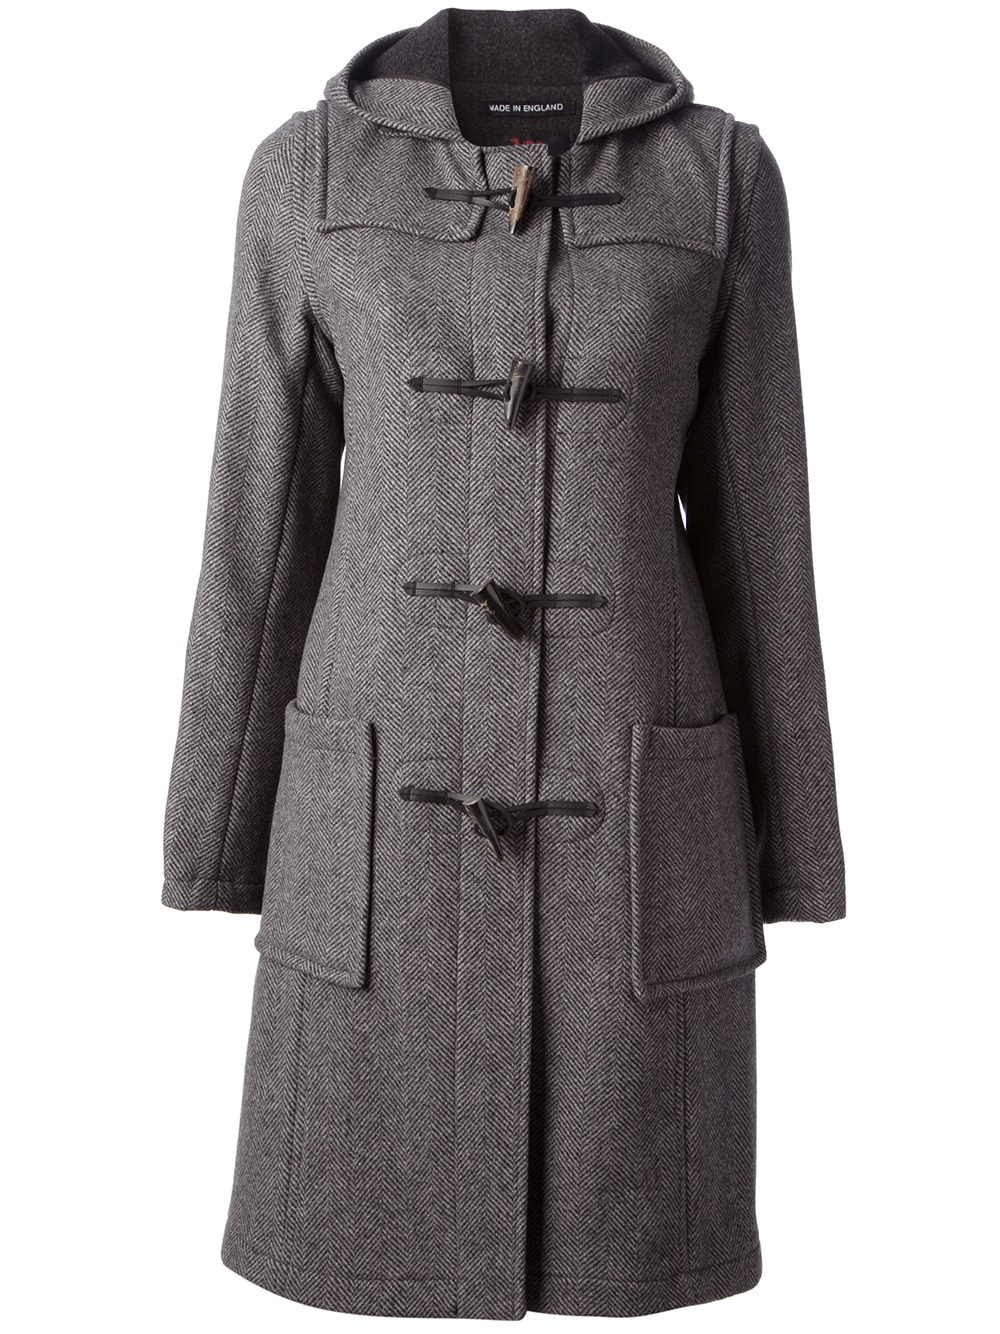 Gloverall Duffle Coat in Gray (grey) | Lyst